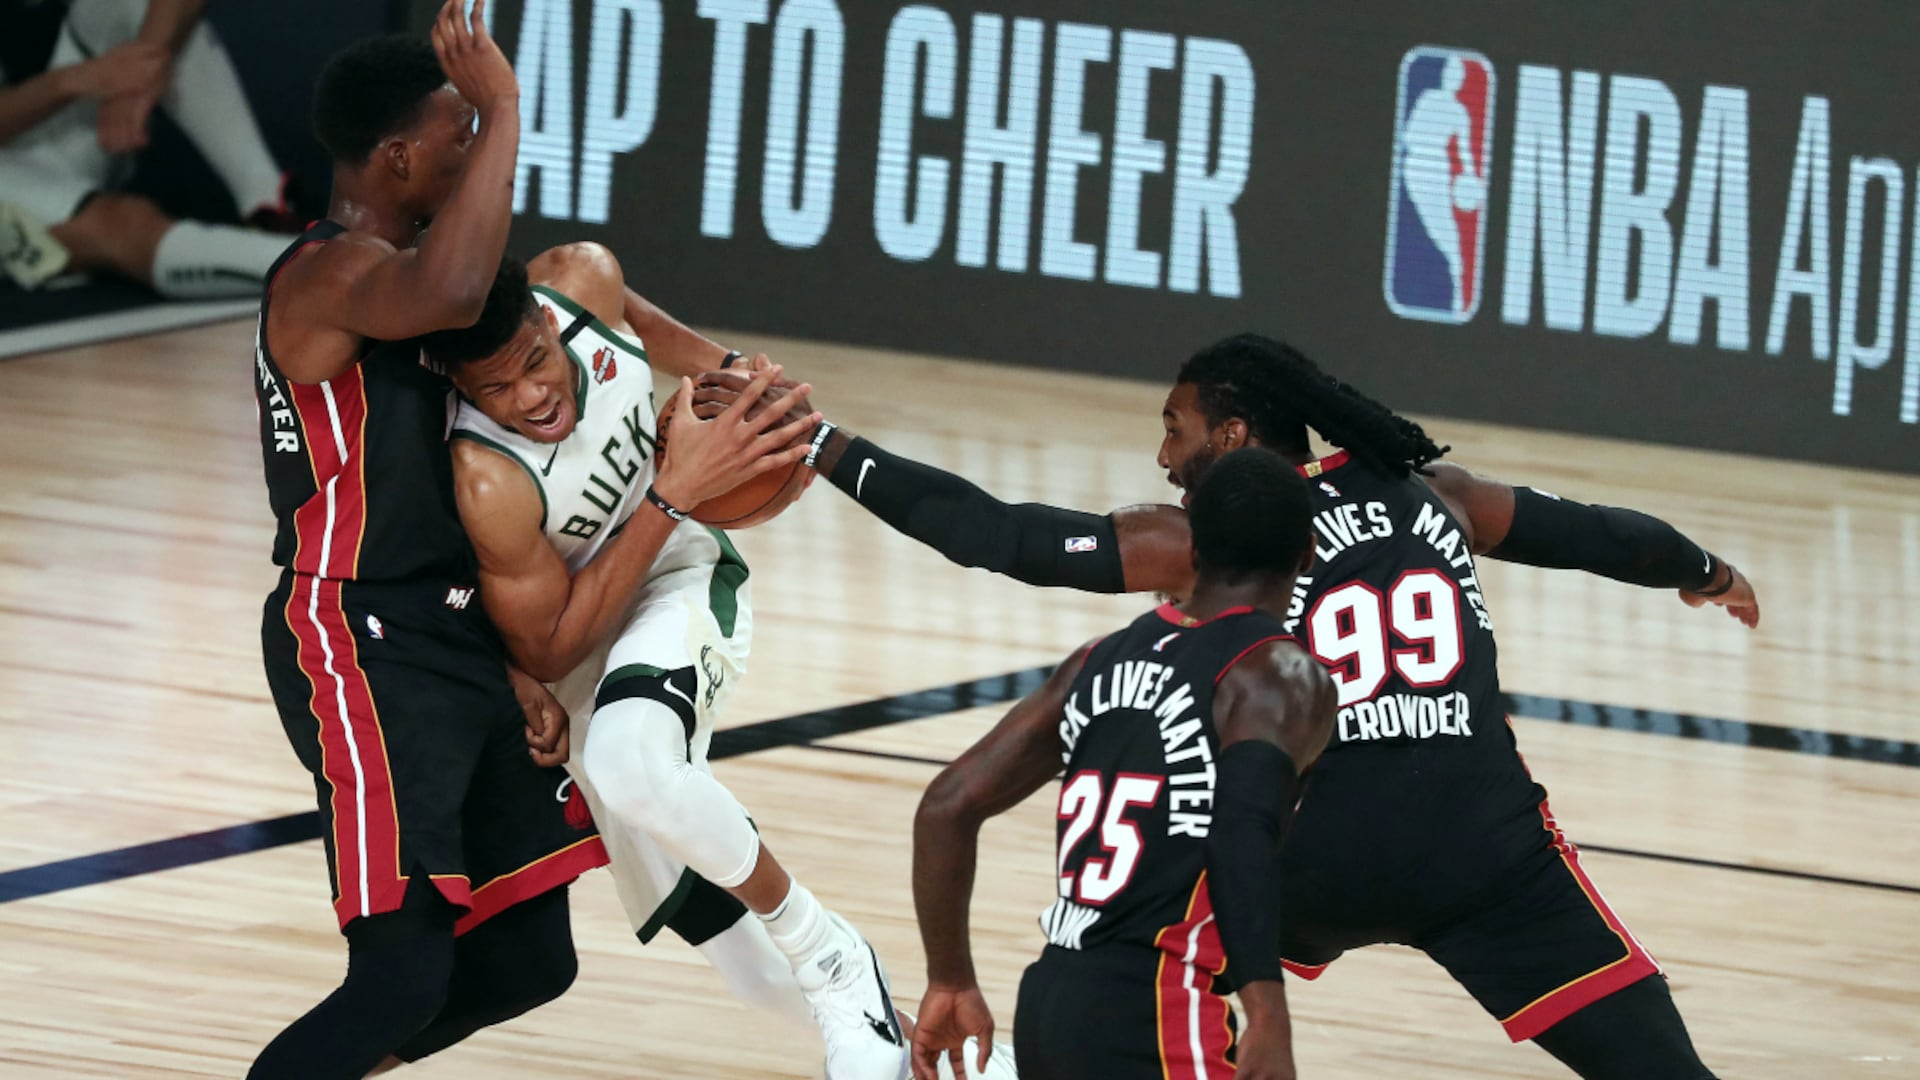 Series Preview: Can Bam Adebayo, Heat slow down Giannis?